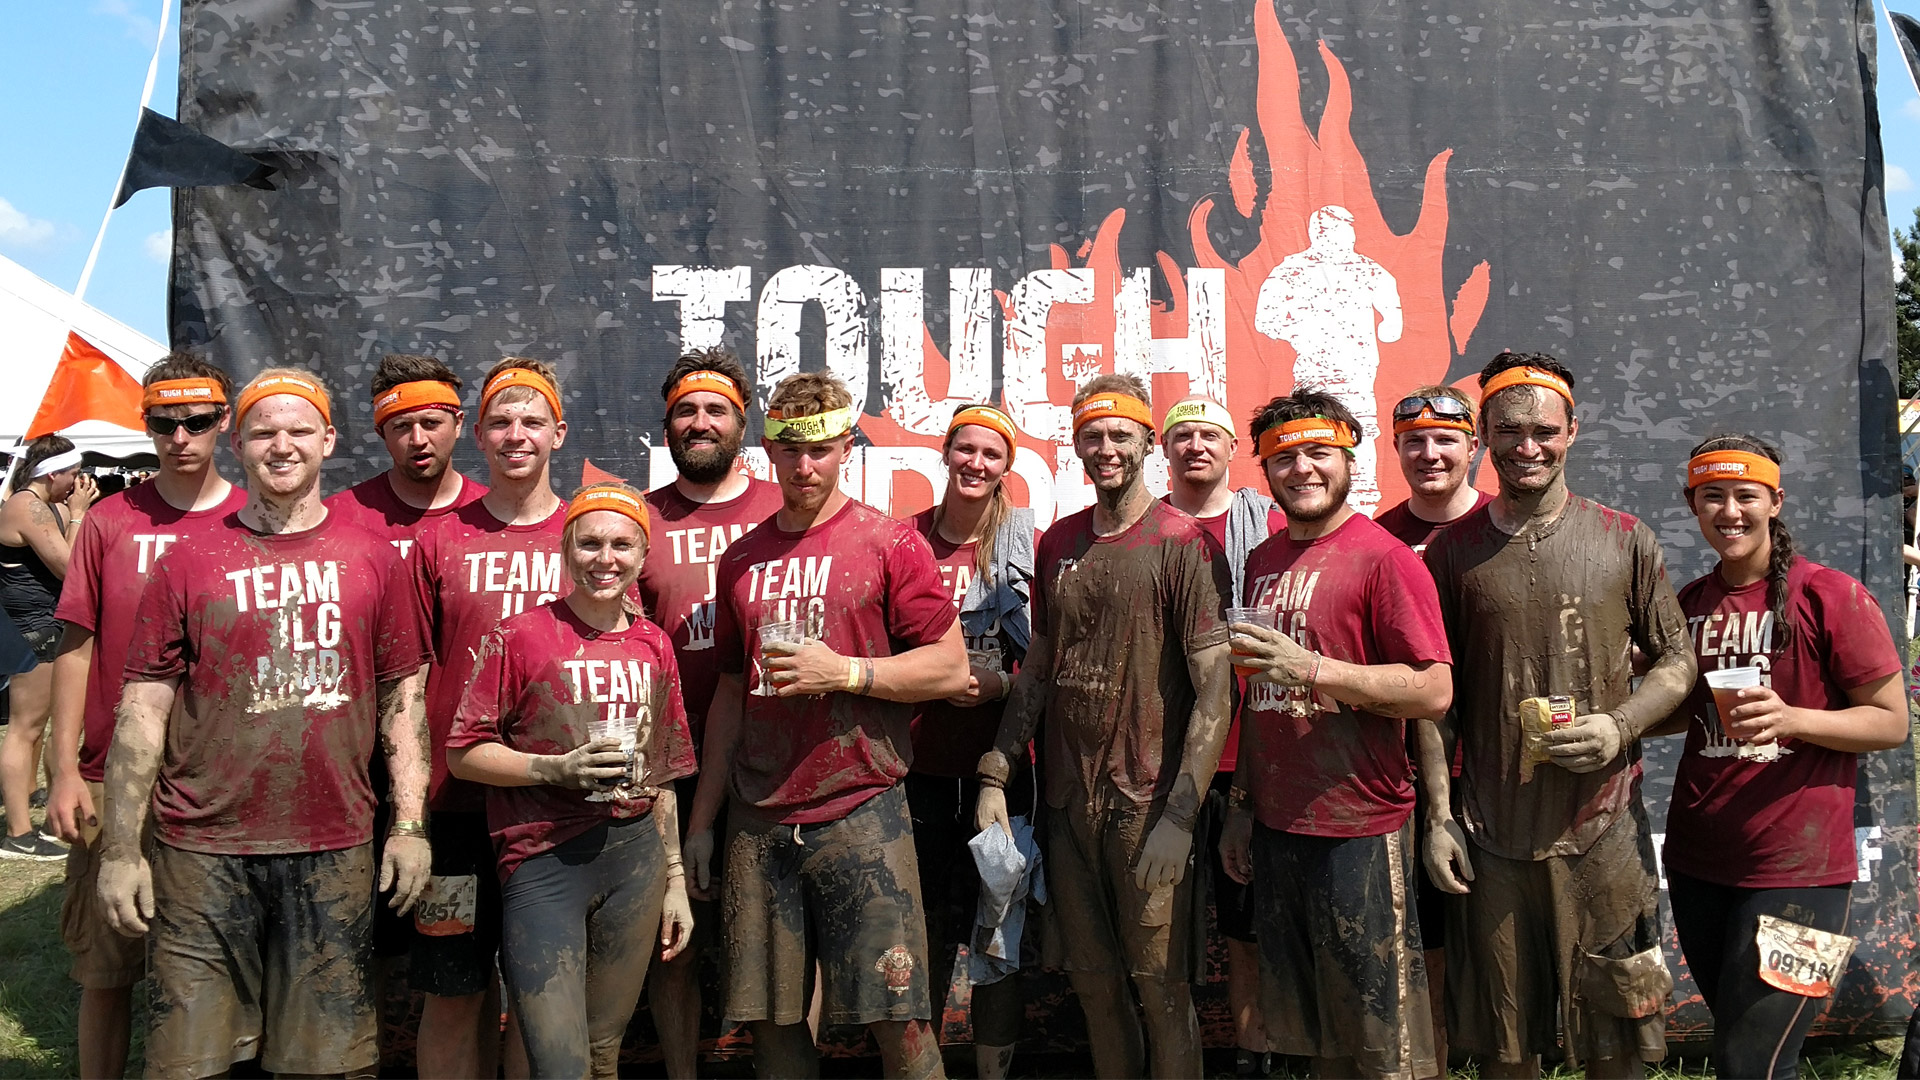 JLG participants of the tough mudder race